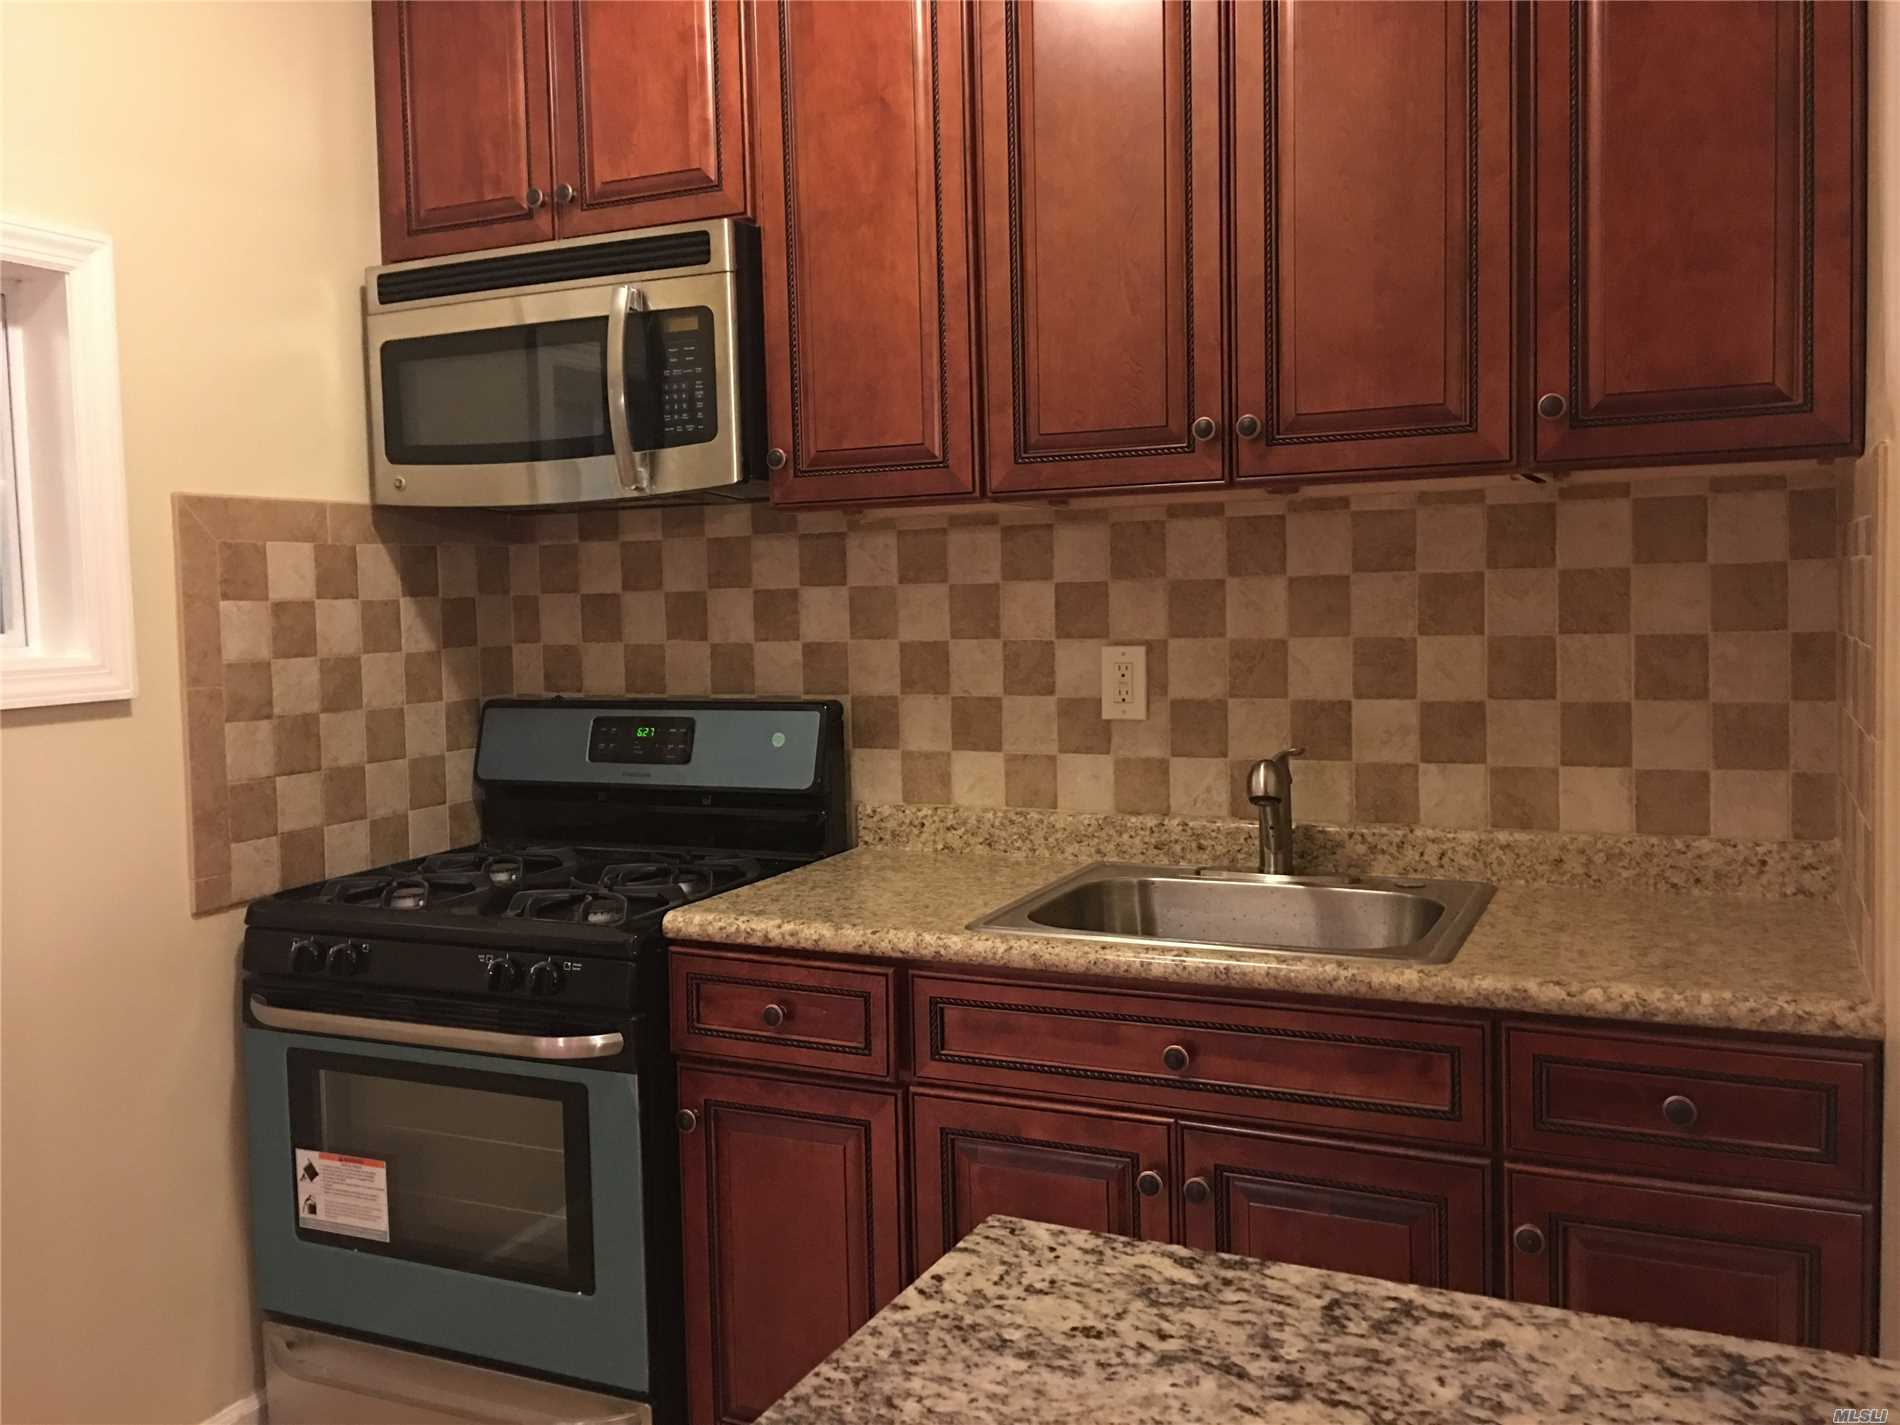 Spacious 3 Bedroom Apt In Middle Village.. Xl Master Bedroom With Separate Entrance, Kitchen With Ss Stove + Microwave, Granite Countertop, Large Living And Dining Area, Apt Extra Sunny With Windows All Around.. Won't Last! 1 Mile To M Train, Buses On Corner, Close To Shops, Supermarkets, Banks, Transportation And Schools!